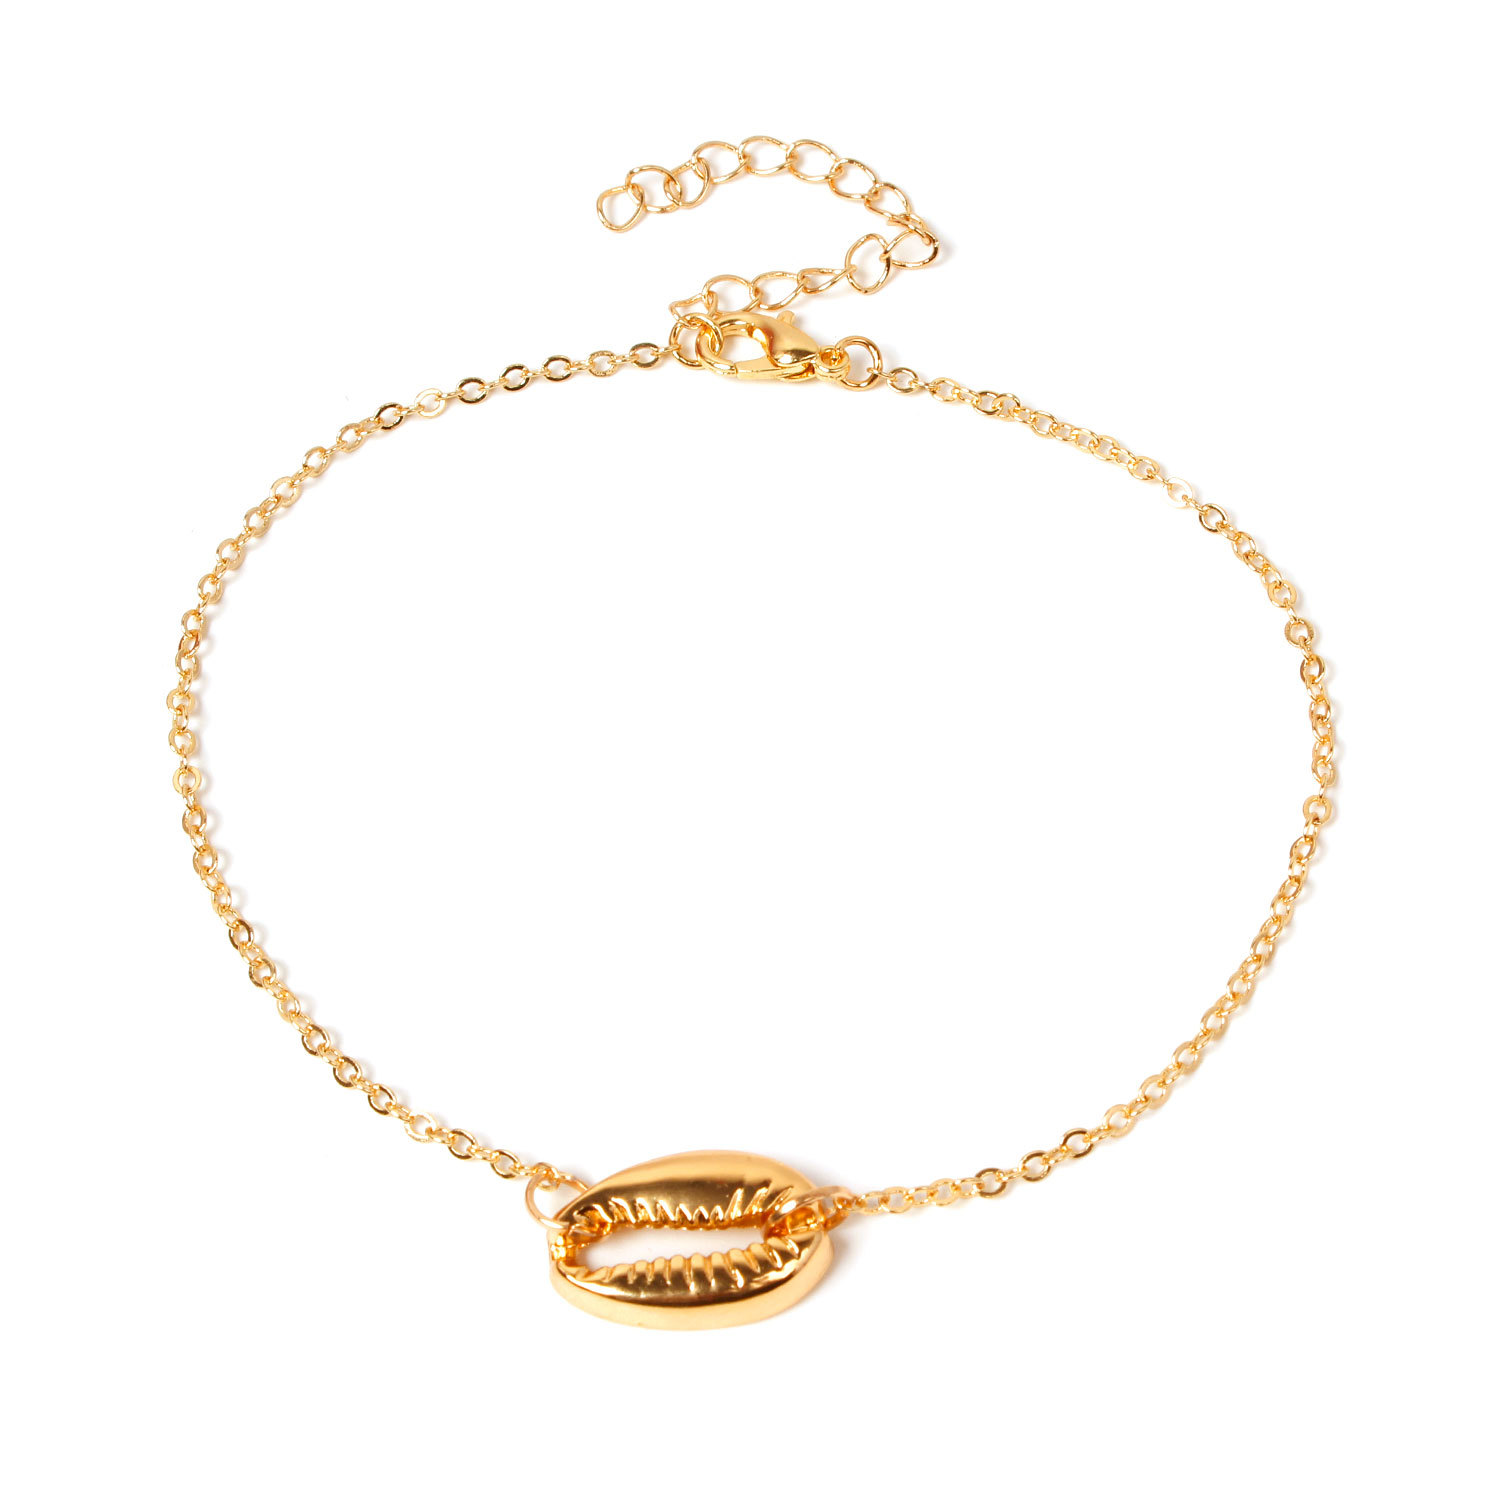 Fashion New Gold Silver Color Metal Shell Foot Chain Anklets Pendant Bohemian Summer Beach Adjustable Anklet Bracelet Jewelry